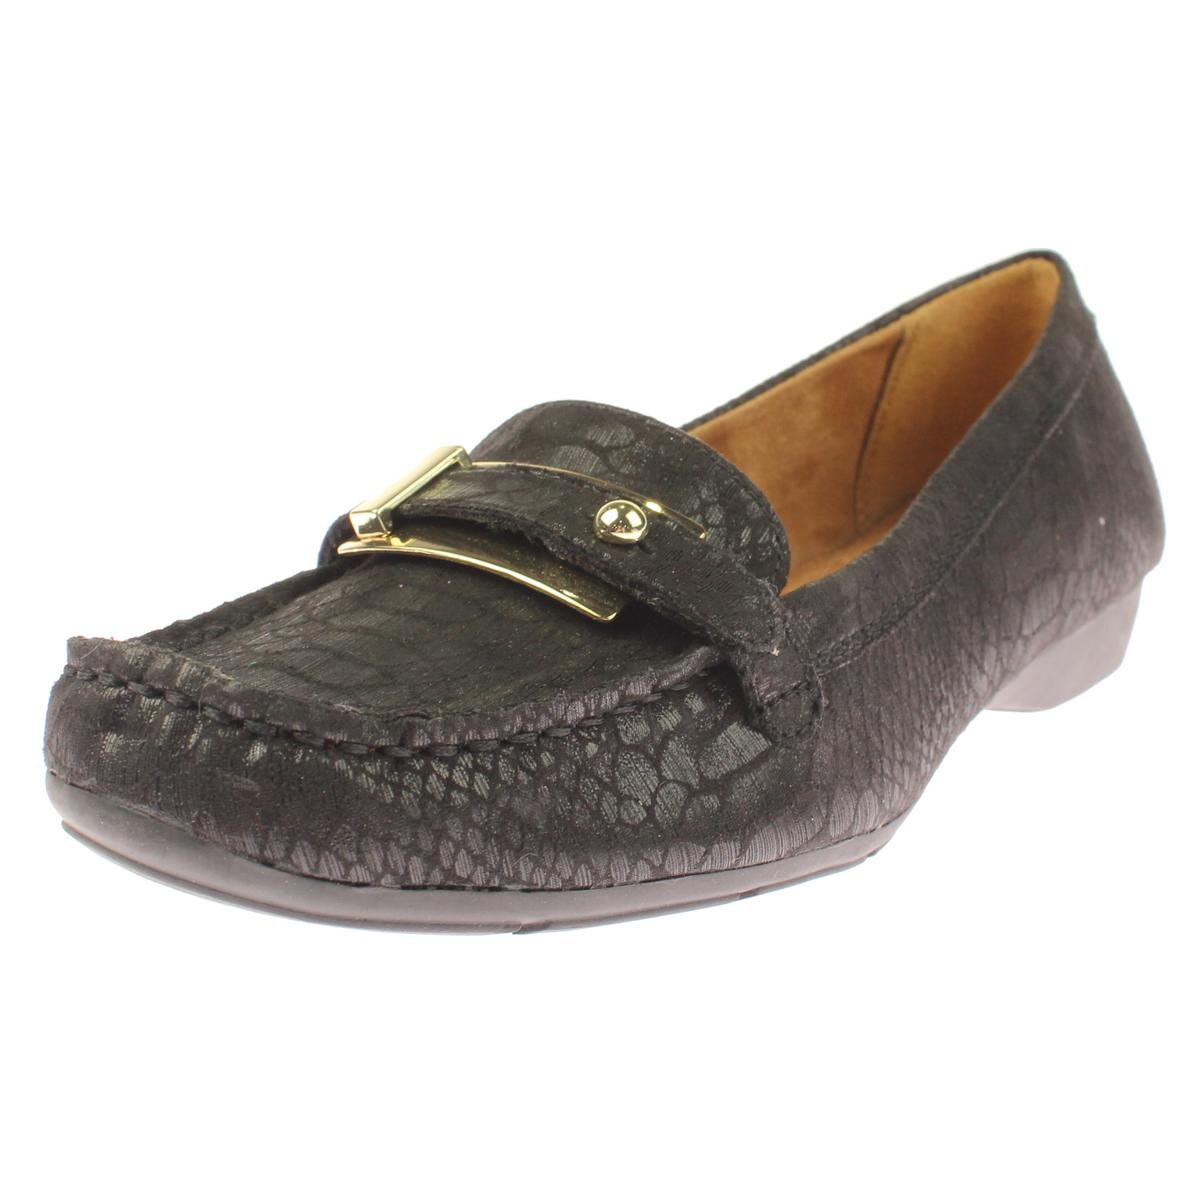 Naturalizer Womens Gisella Belted Toe Moc Toe Belted Loafers 5dfa00